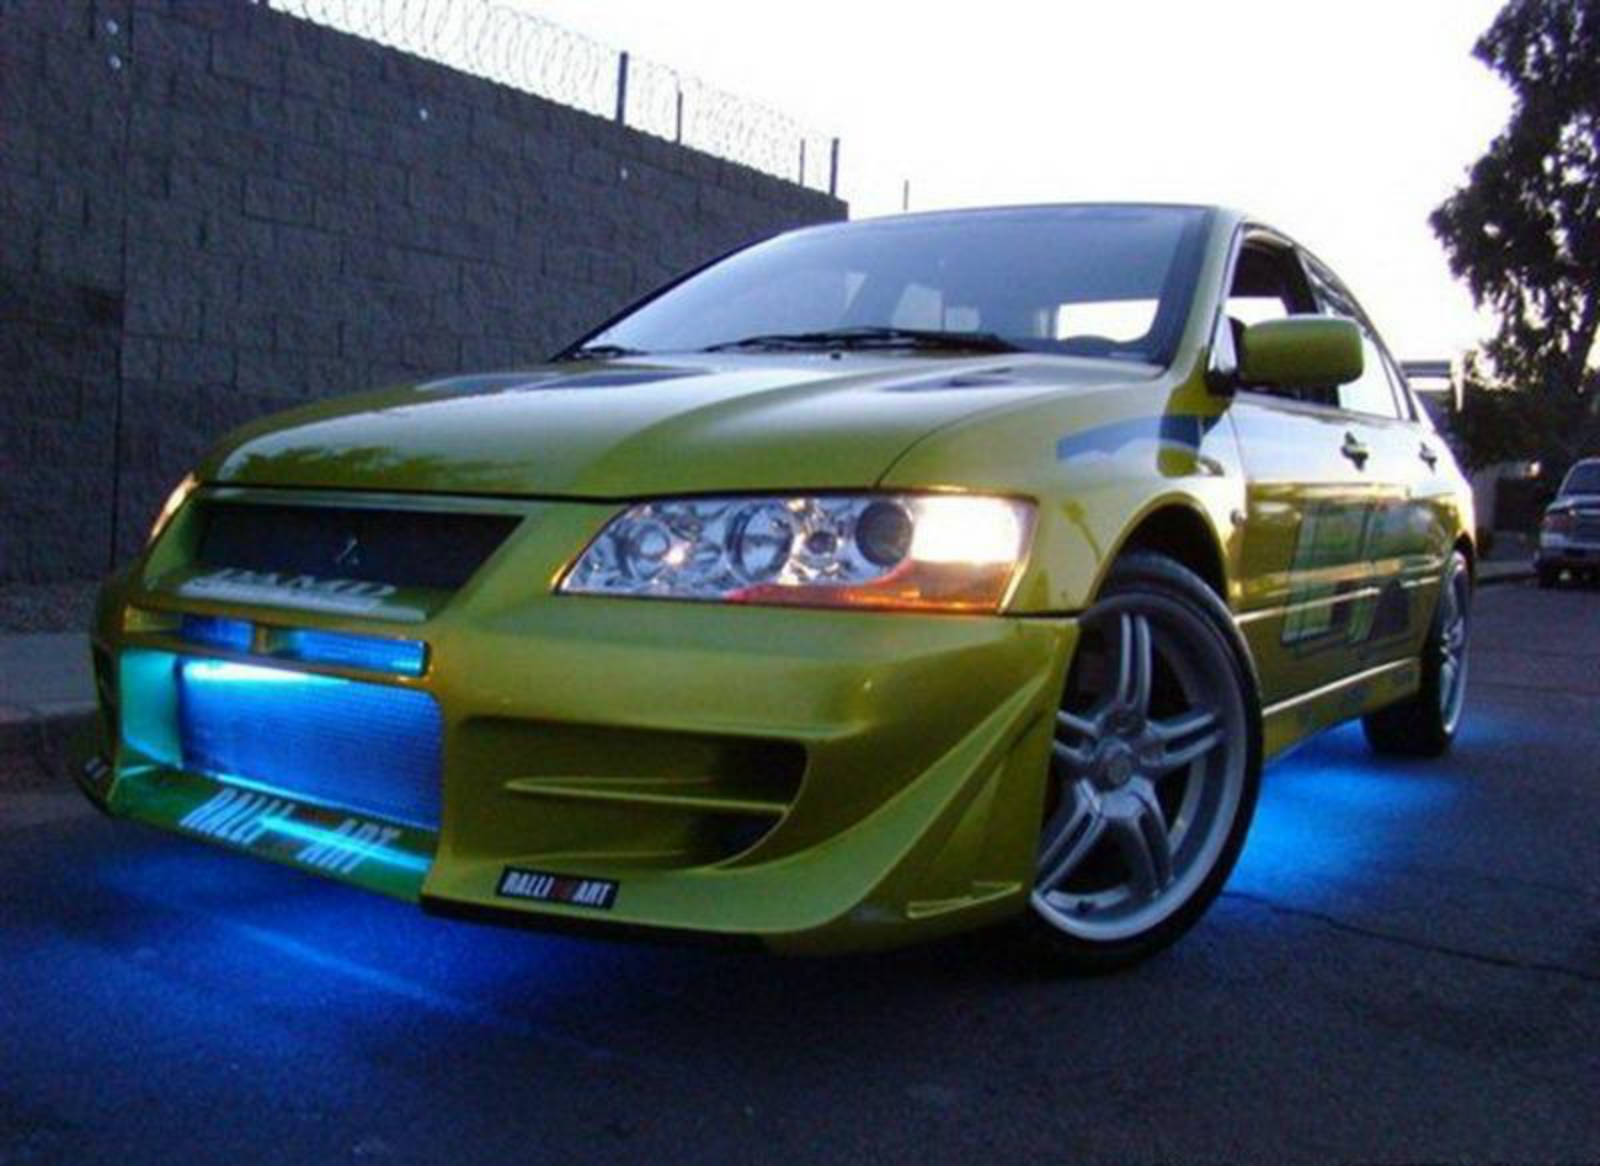 2 fast 2 furious paul walker s mitsubishi evo for sale on ebay muscle cars zone. Black Bedroom Furniture Sets. Home Design Ideas